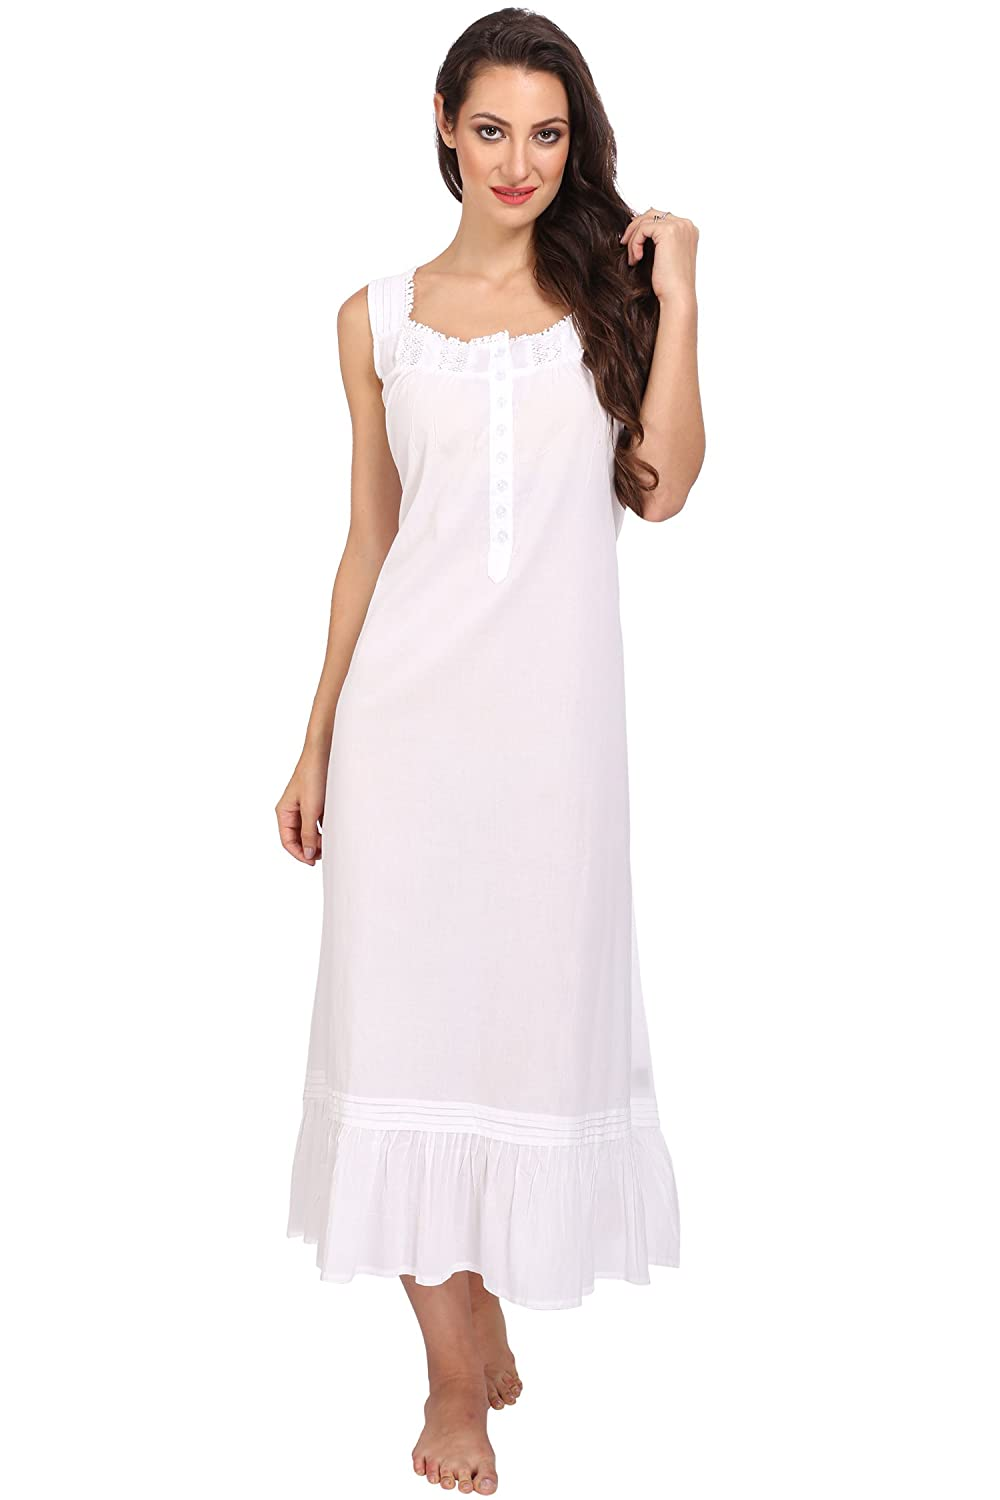 ADONNA COTTON BLEND NIGHTGOWN. Adonna UPC: Plus Size 3X. Cotton/Polyester Blend. Lace and Ribbon Trim at Bust. Length 38